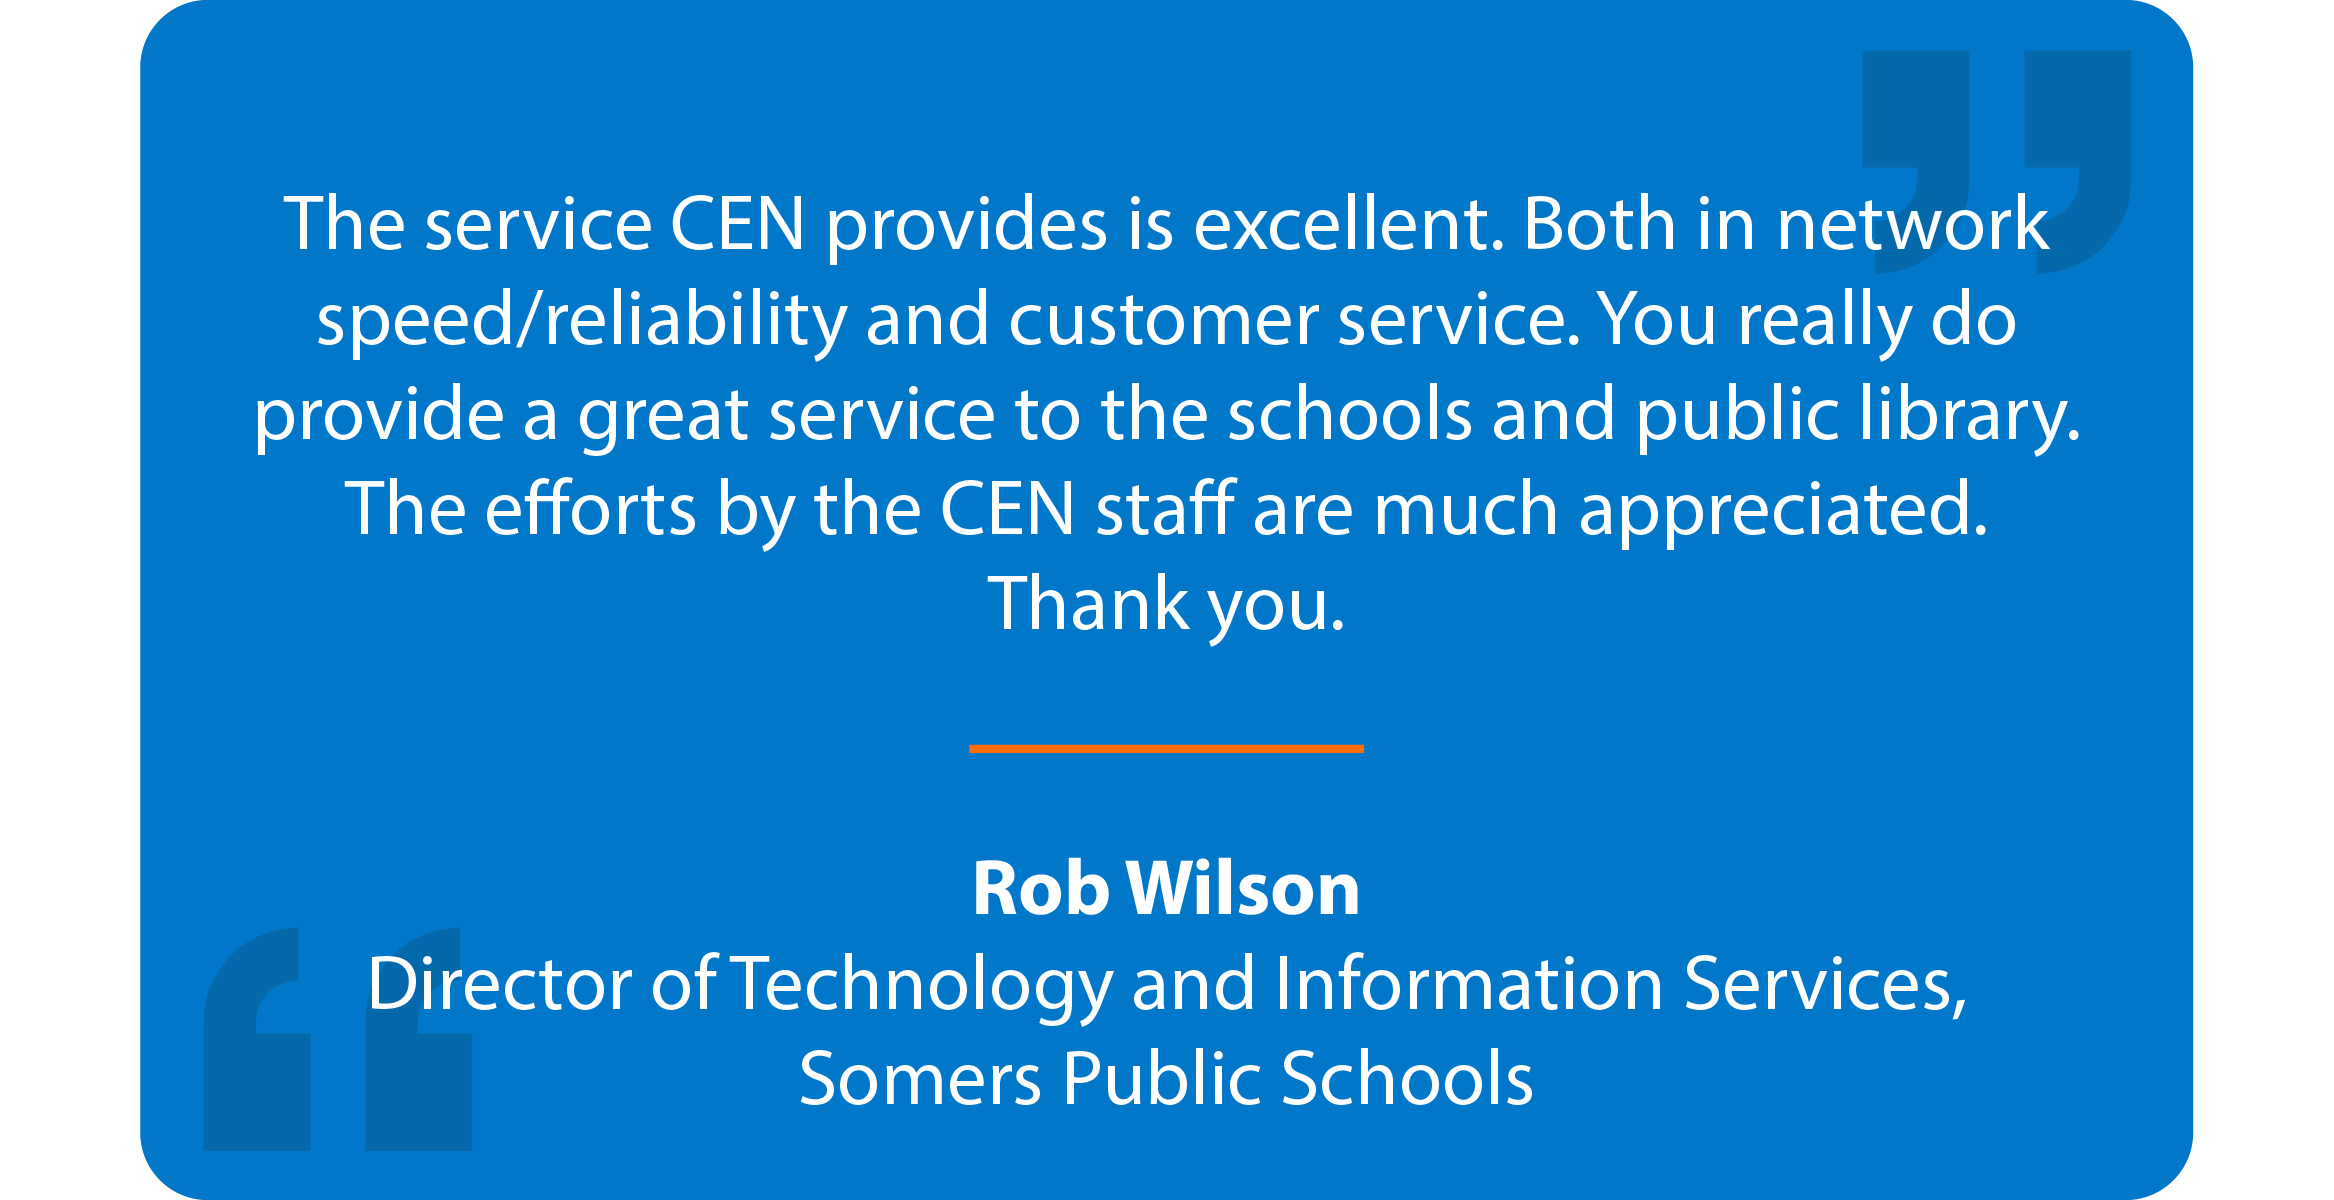 Blue box with quote that reads: The service CEN provides is excellent. Both in network speed/reliability and customer service. You really do provide a great service to the schools and public library. The efforts by the CEN staff are much appreciated. Thank you. Rob Wilson Director of Technology and Information Services, Somers Public Schools